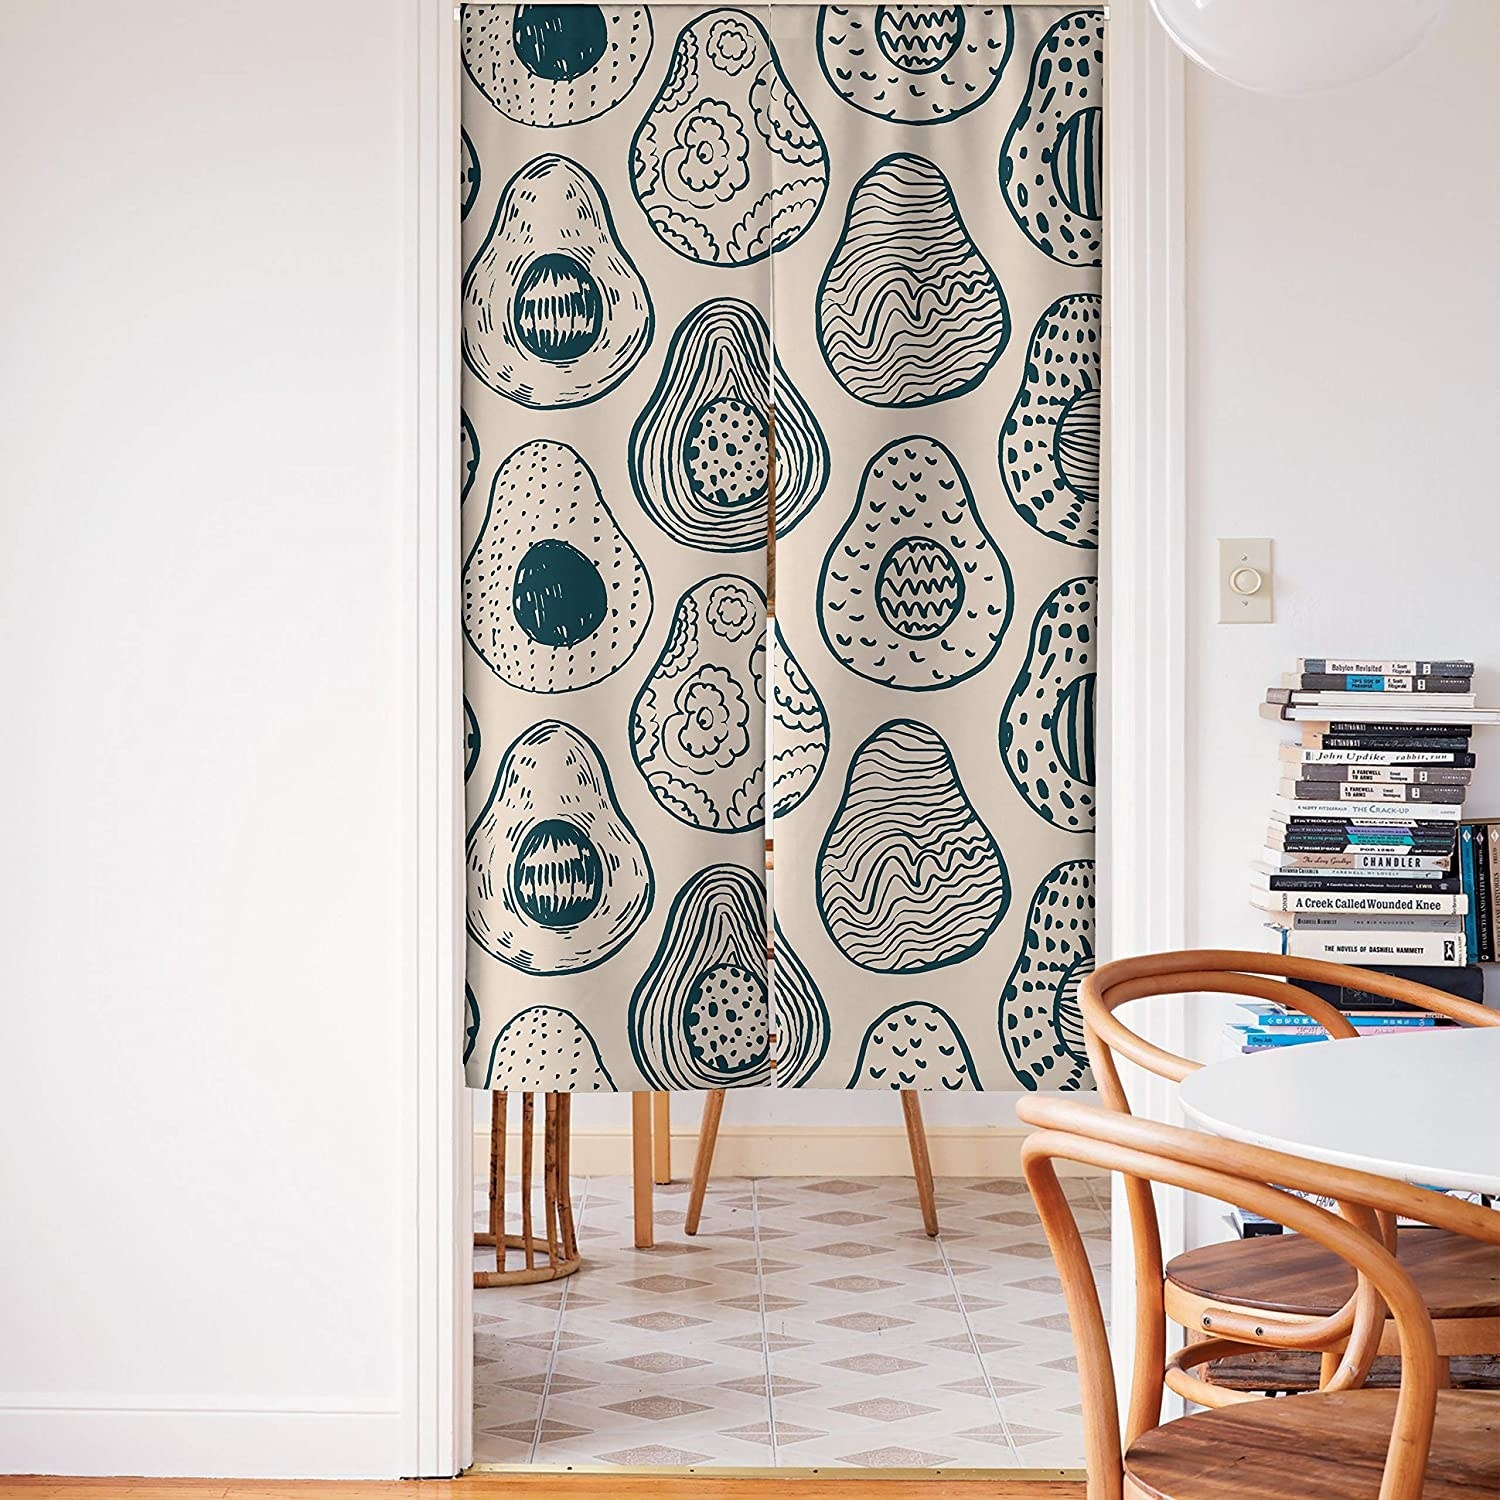 The curtain covering a door